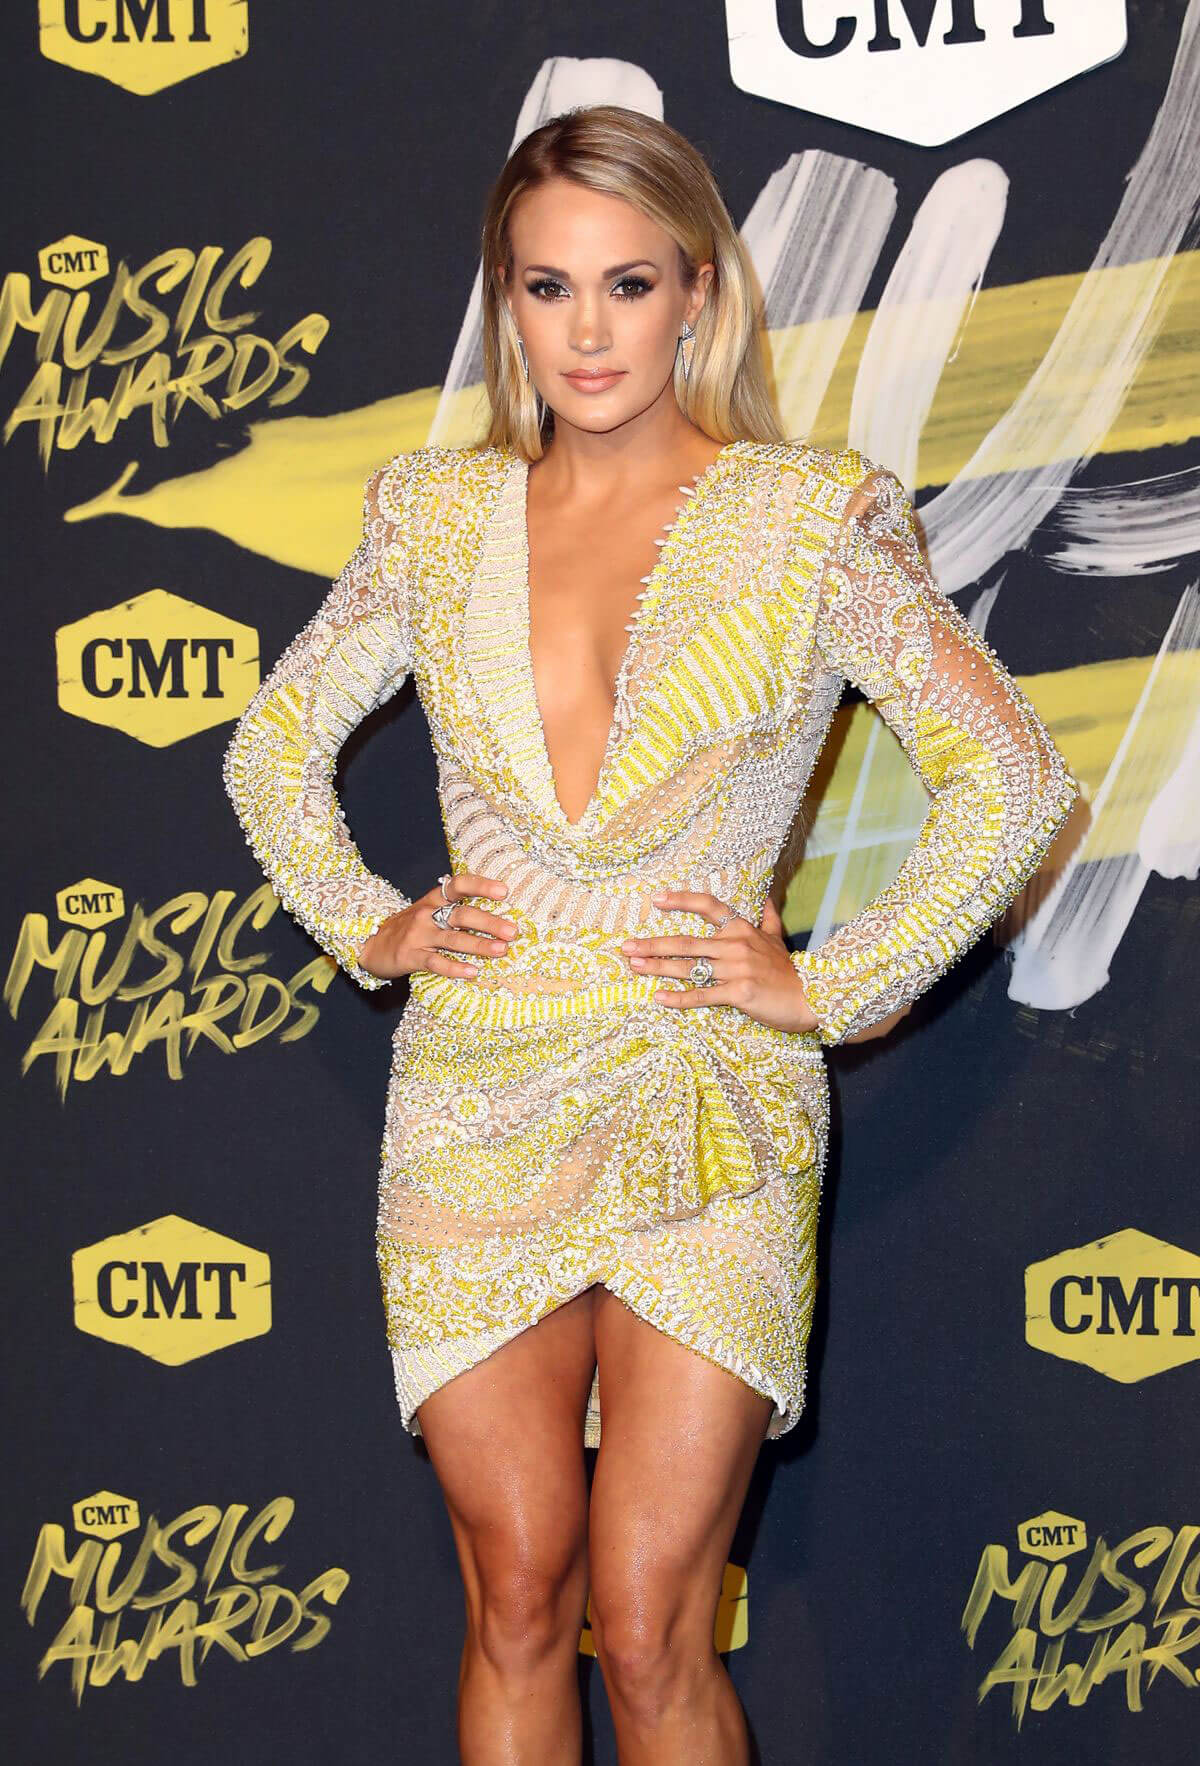 Carrie Underwood at CMT Music Awards 2018 in Nashville 2018/06/06 6